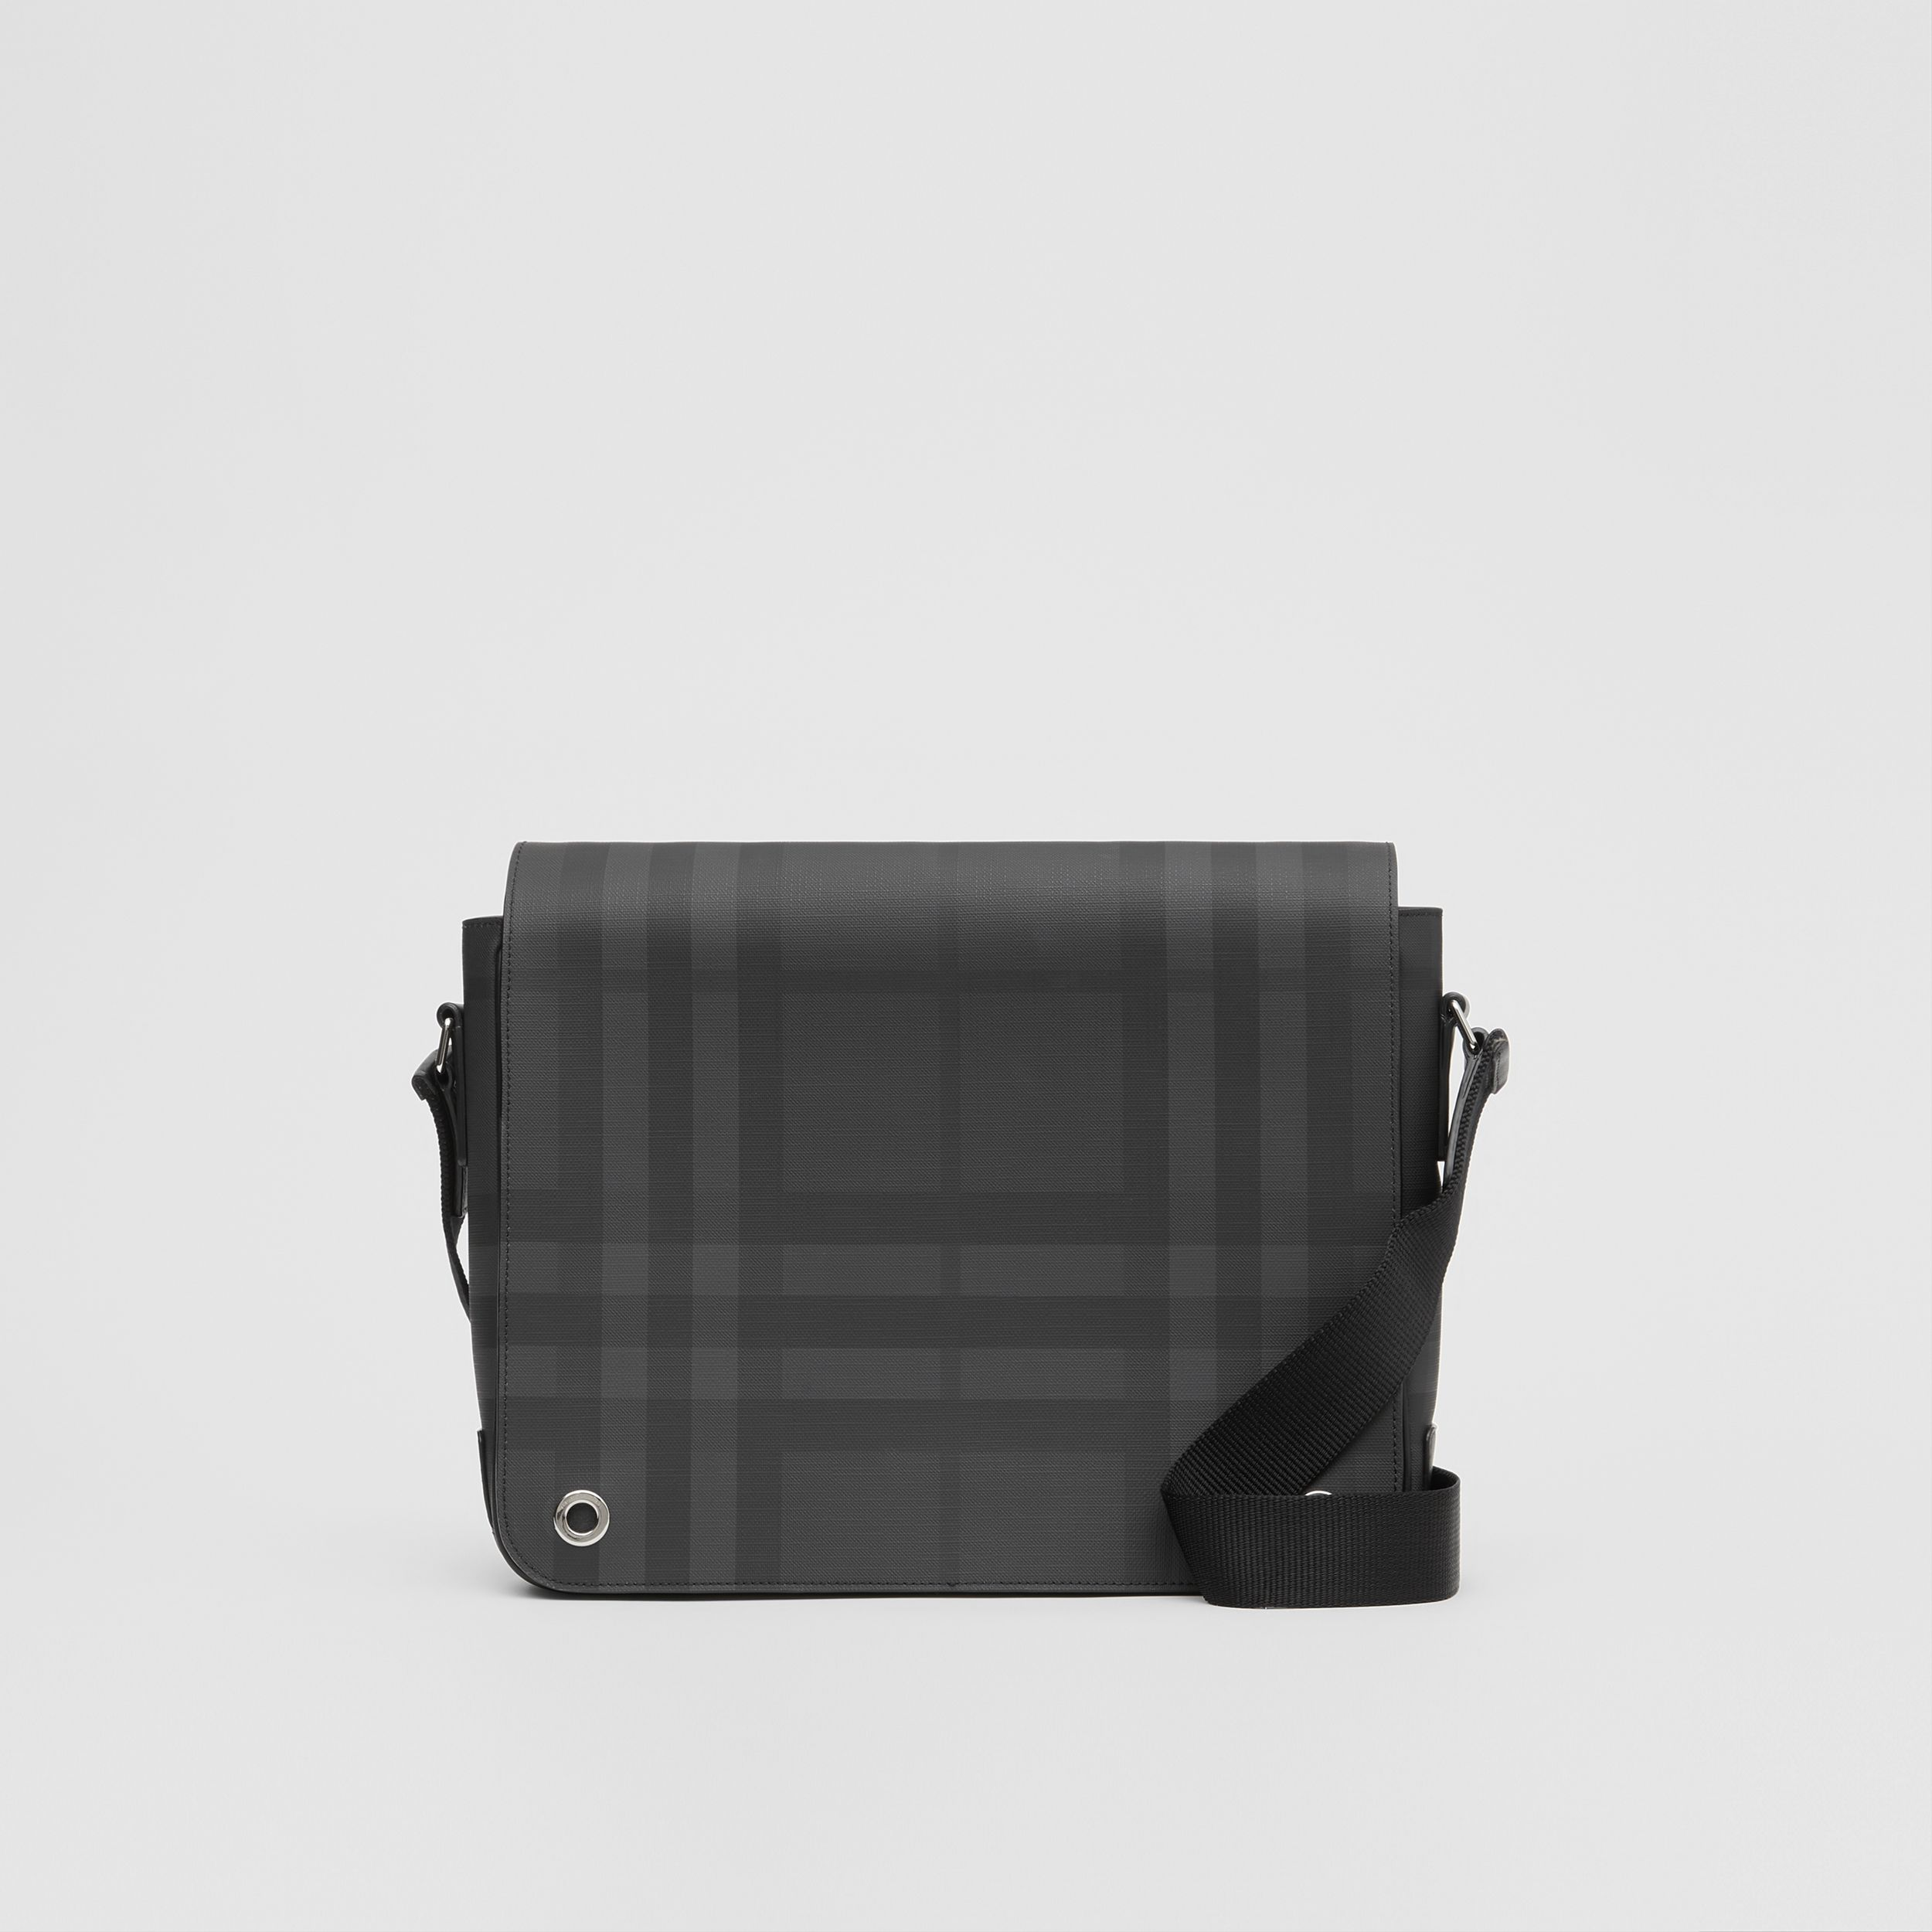 London Check and Leather Satchel in Dark Charcoal | Burberry - 1